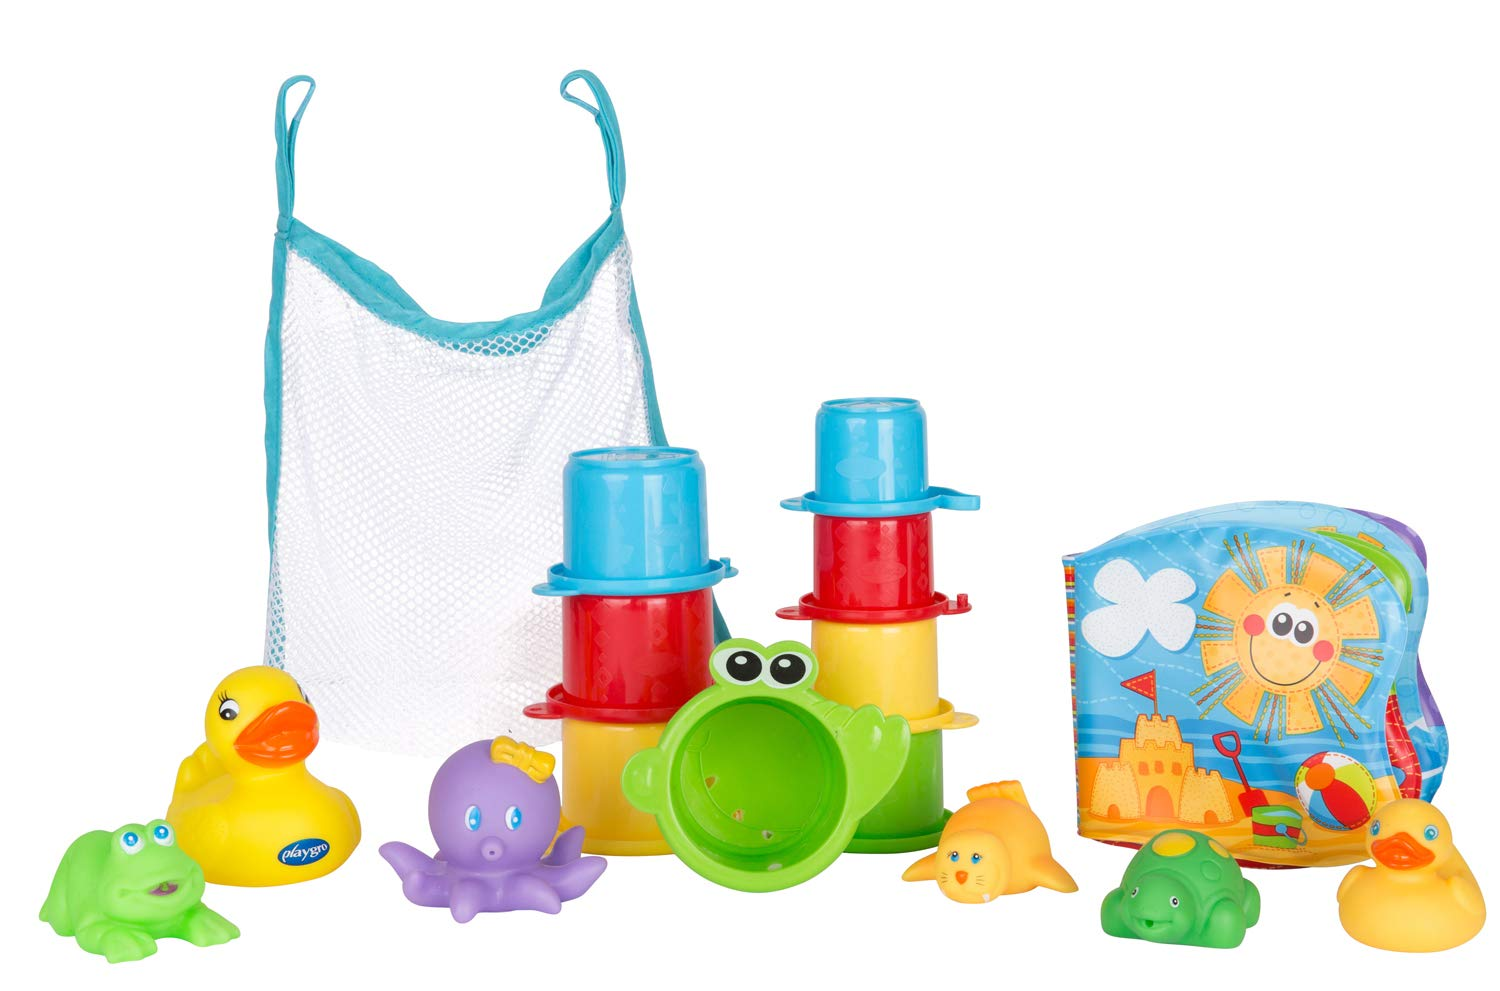 Playgro Today's only 0182933 Bath Fun Toy Gift At the price Baby Pack Months for 0-24